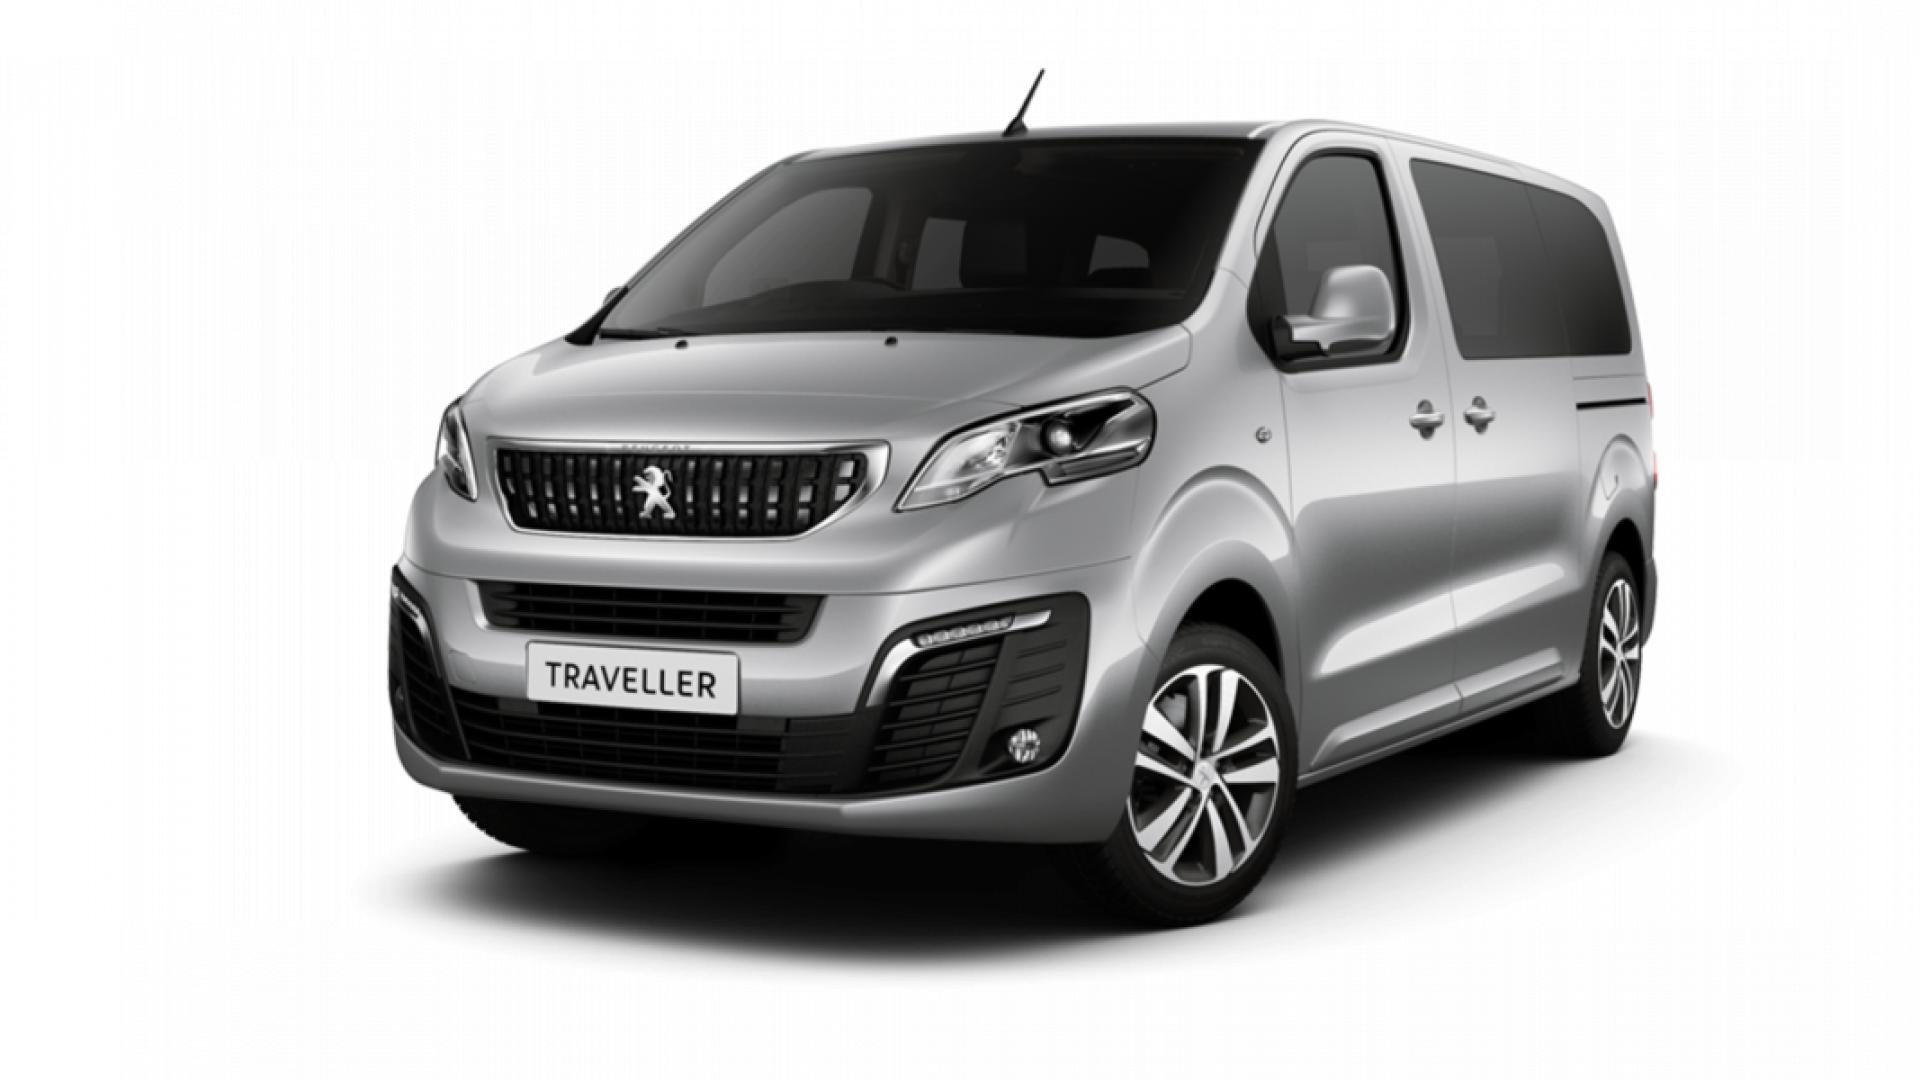 business peugeot traveller sw 2 0 bluehdi 150 allure standard 8 seat 5dr robins and day. Black Bedroom Furniture Sets. Home Design Ideas